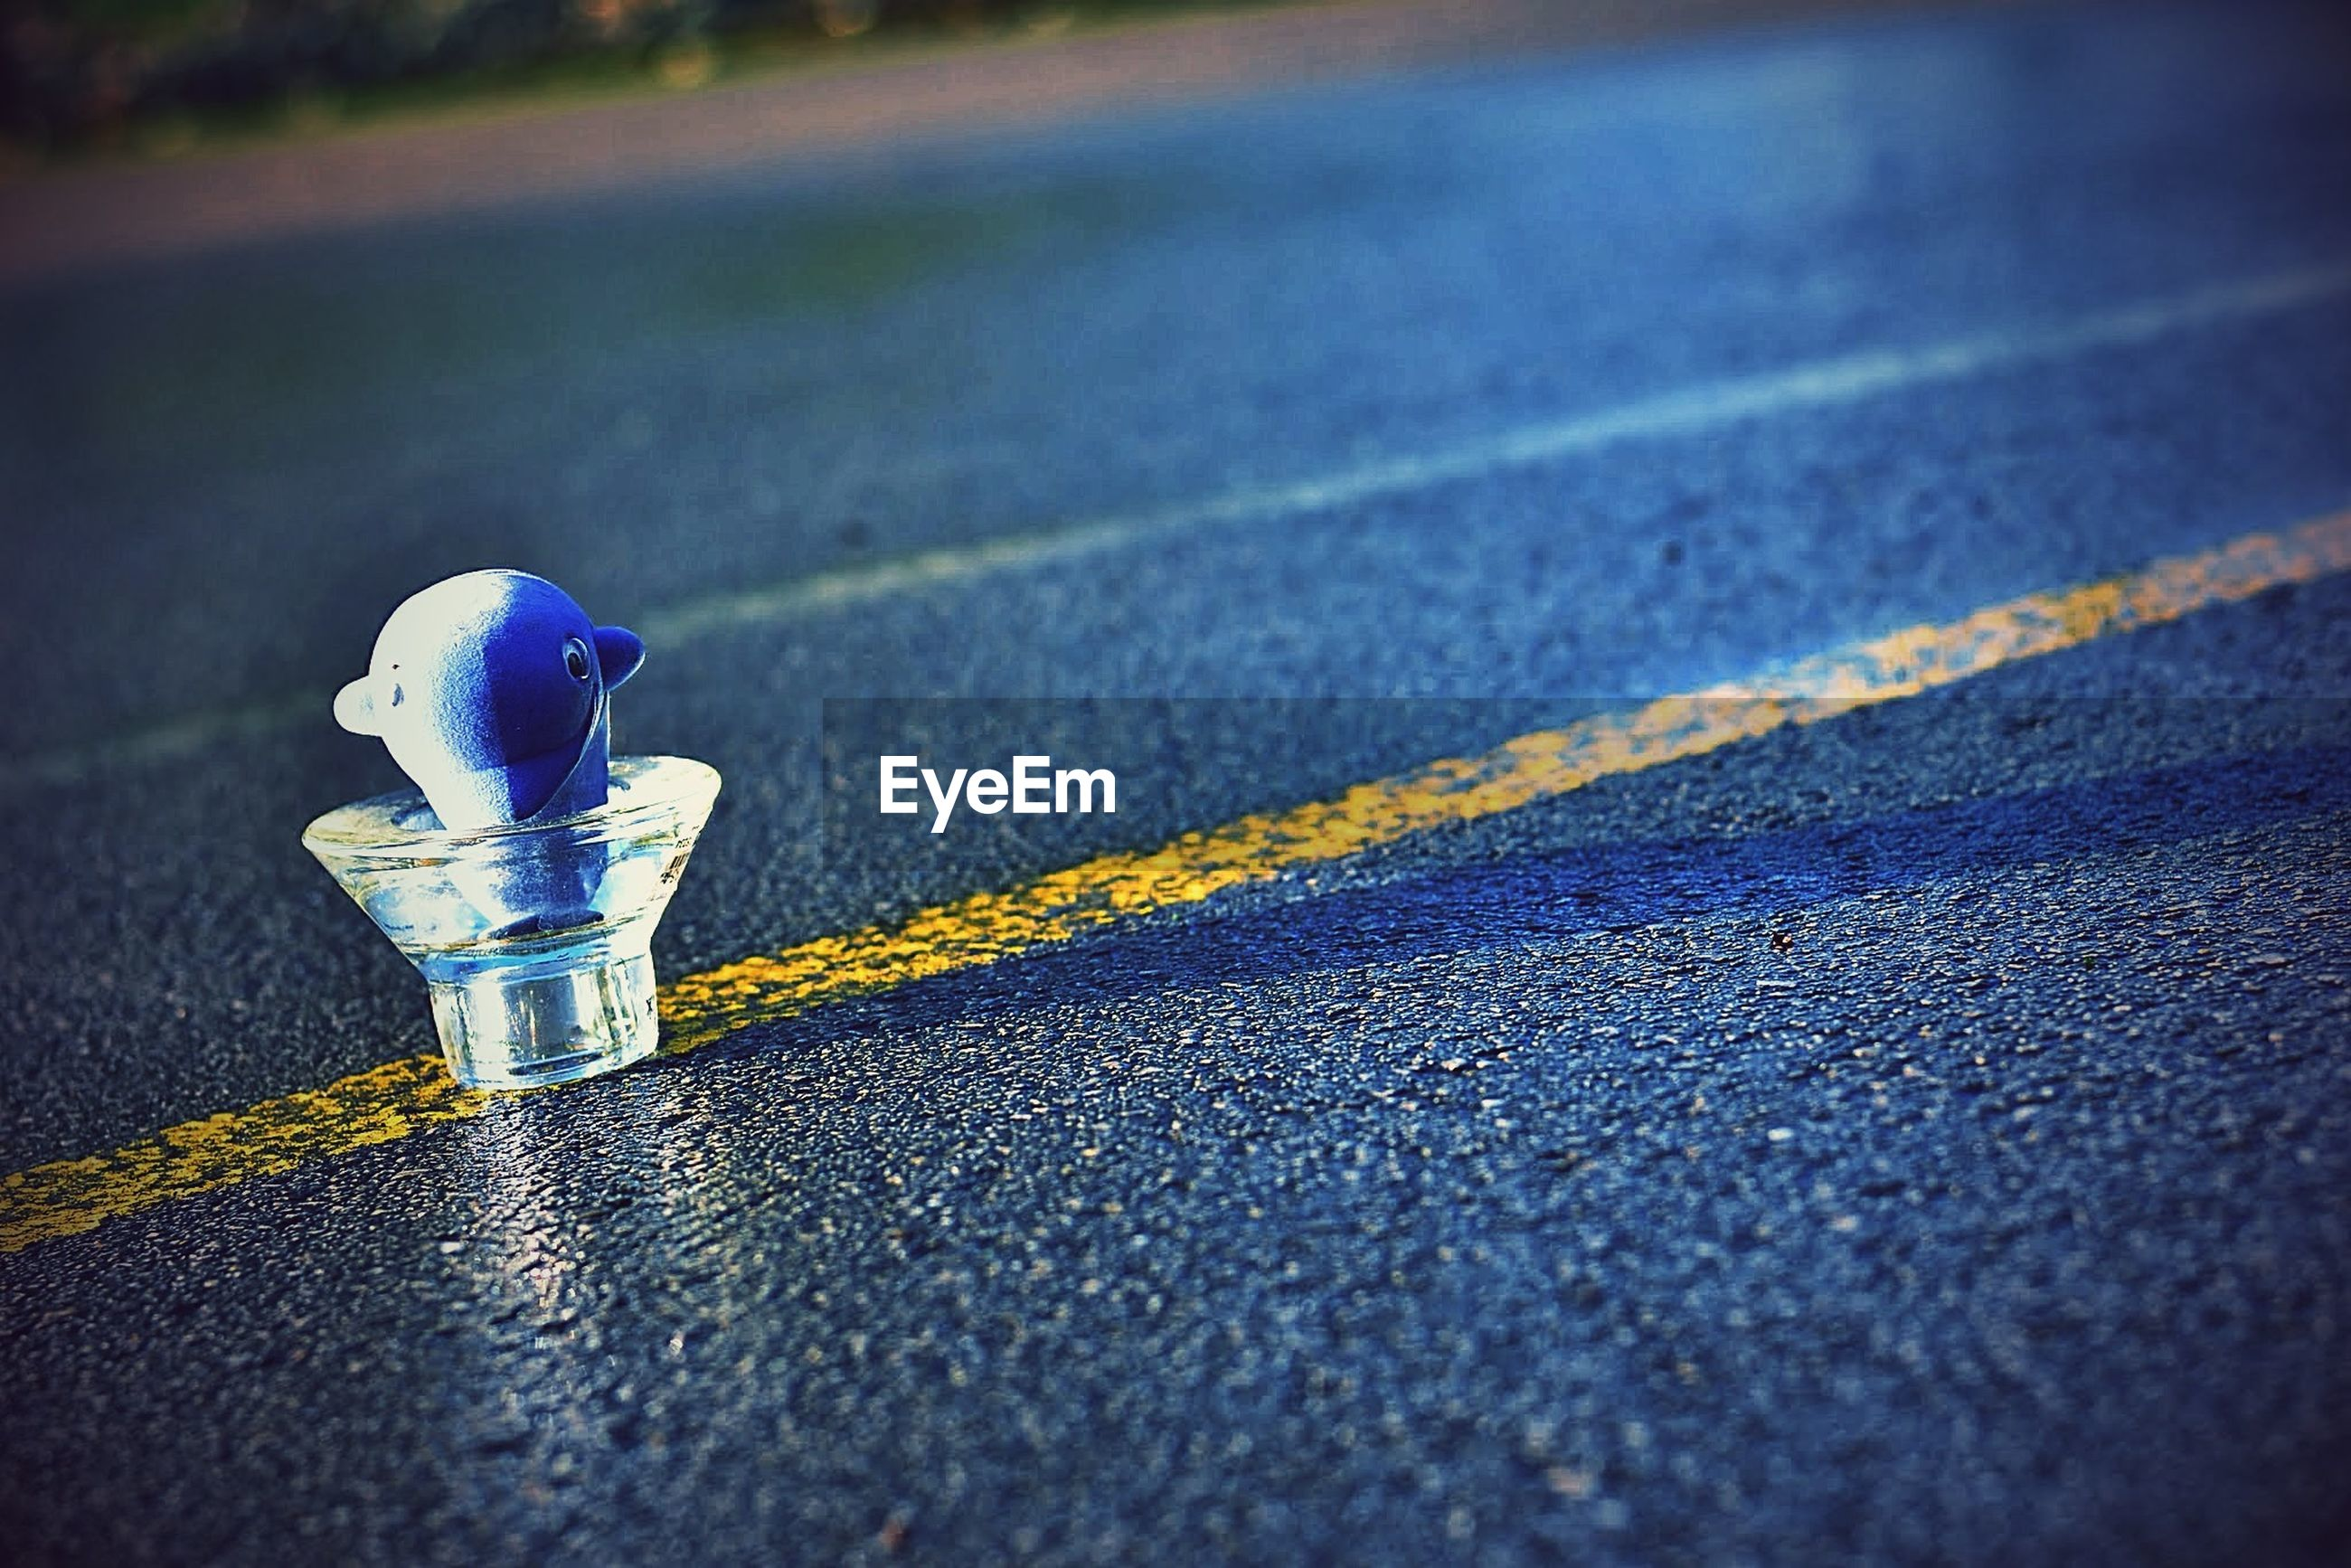 street, road, asphalt, surface level, road marking, selective focus, transportation, close-up, wet, focus on foreground, blue, no people, day, outdoors, yellow, weather, sunlight, guidance, safety, textured